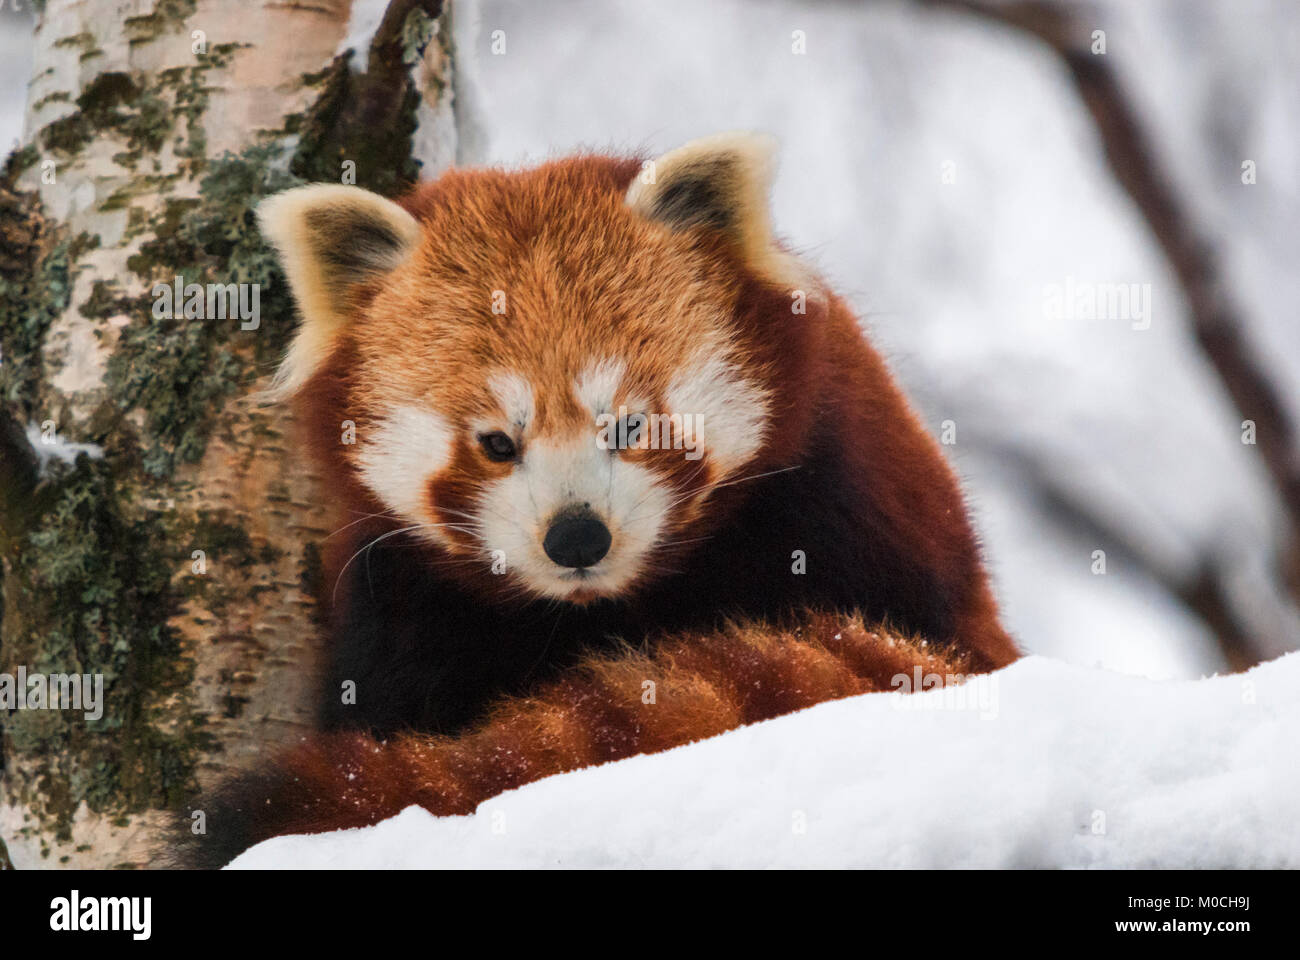 A close up image of a Red Panda, Ailurus fulgens, in the snow at the Highland Wildlife Park, Kingussie, Scotland. Stock Photo